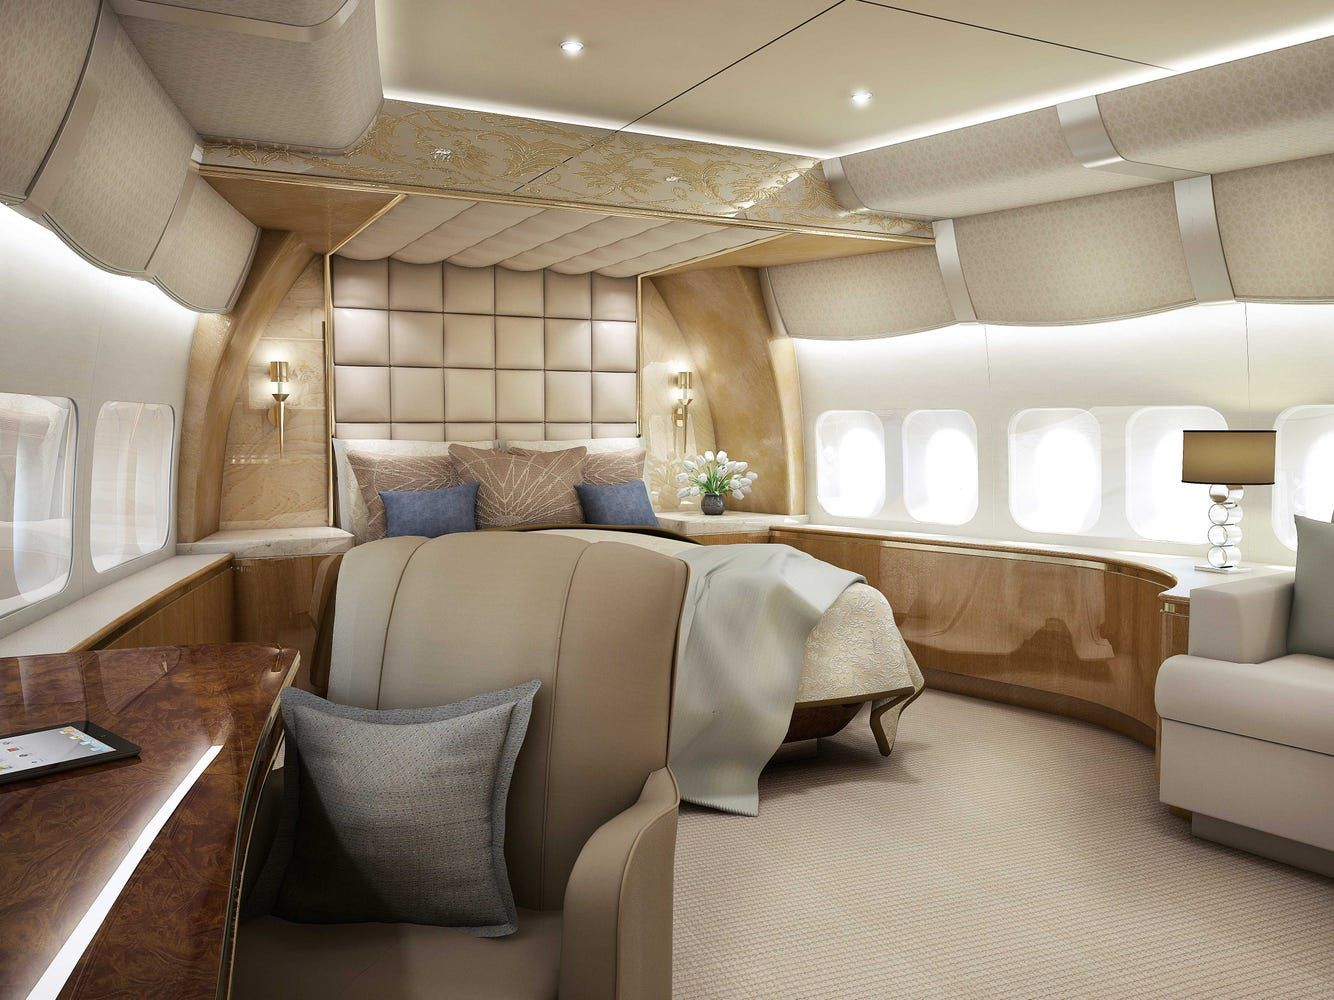 This 747 Private Jet Is A Palace In The Sky In 2020 Private Jet Interior Private Jet Luxury Private Jets